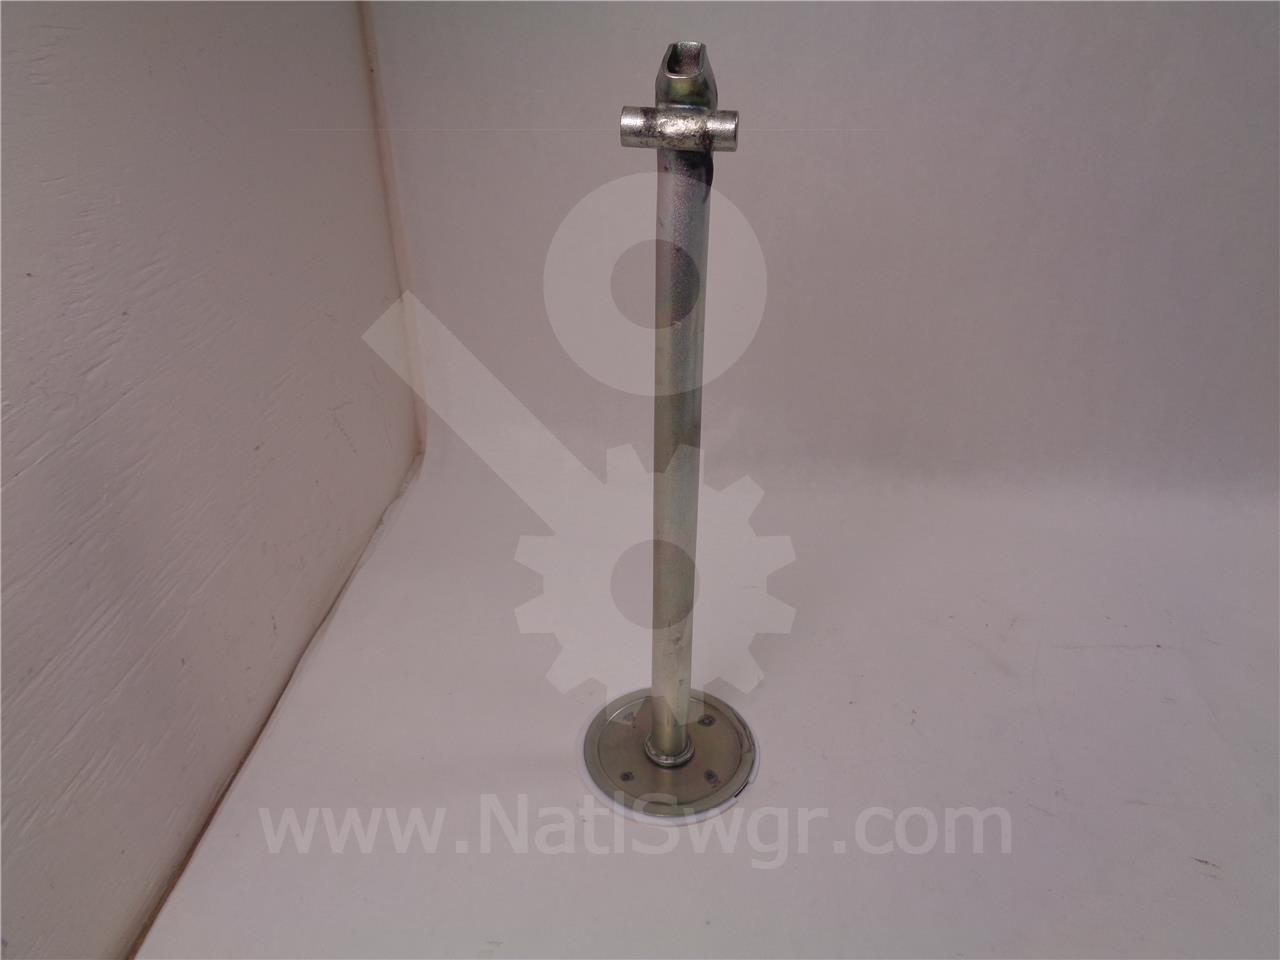 General Electric GE TUBE AND PISTON ASSEMBLY